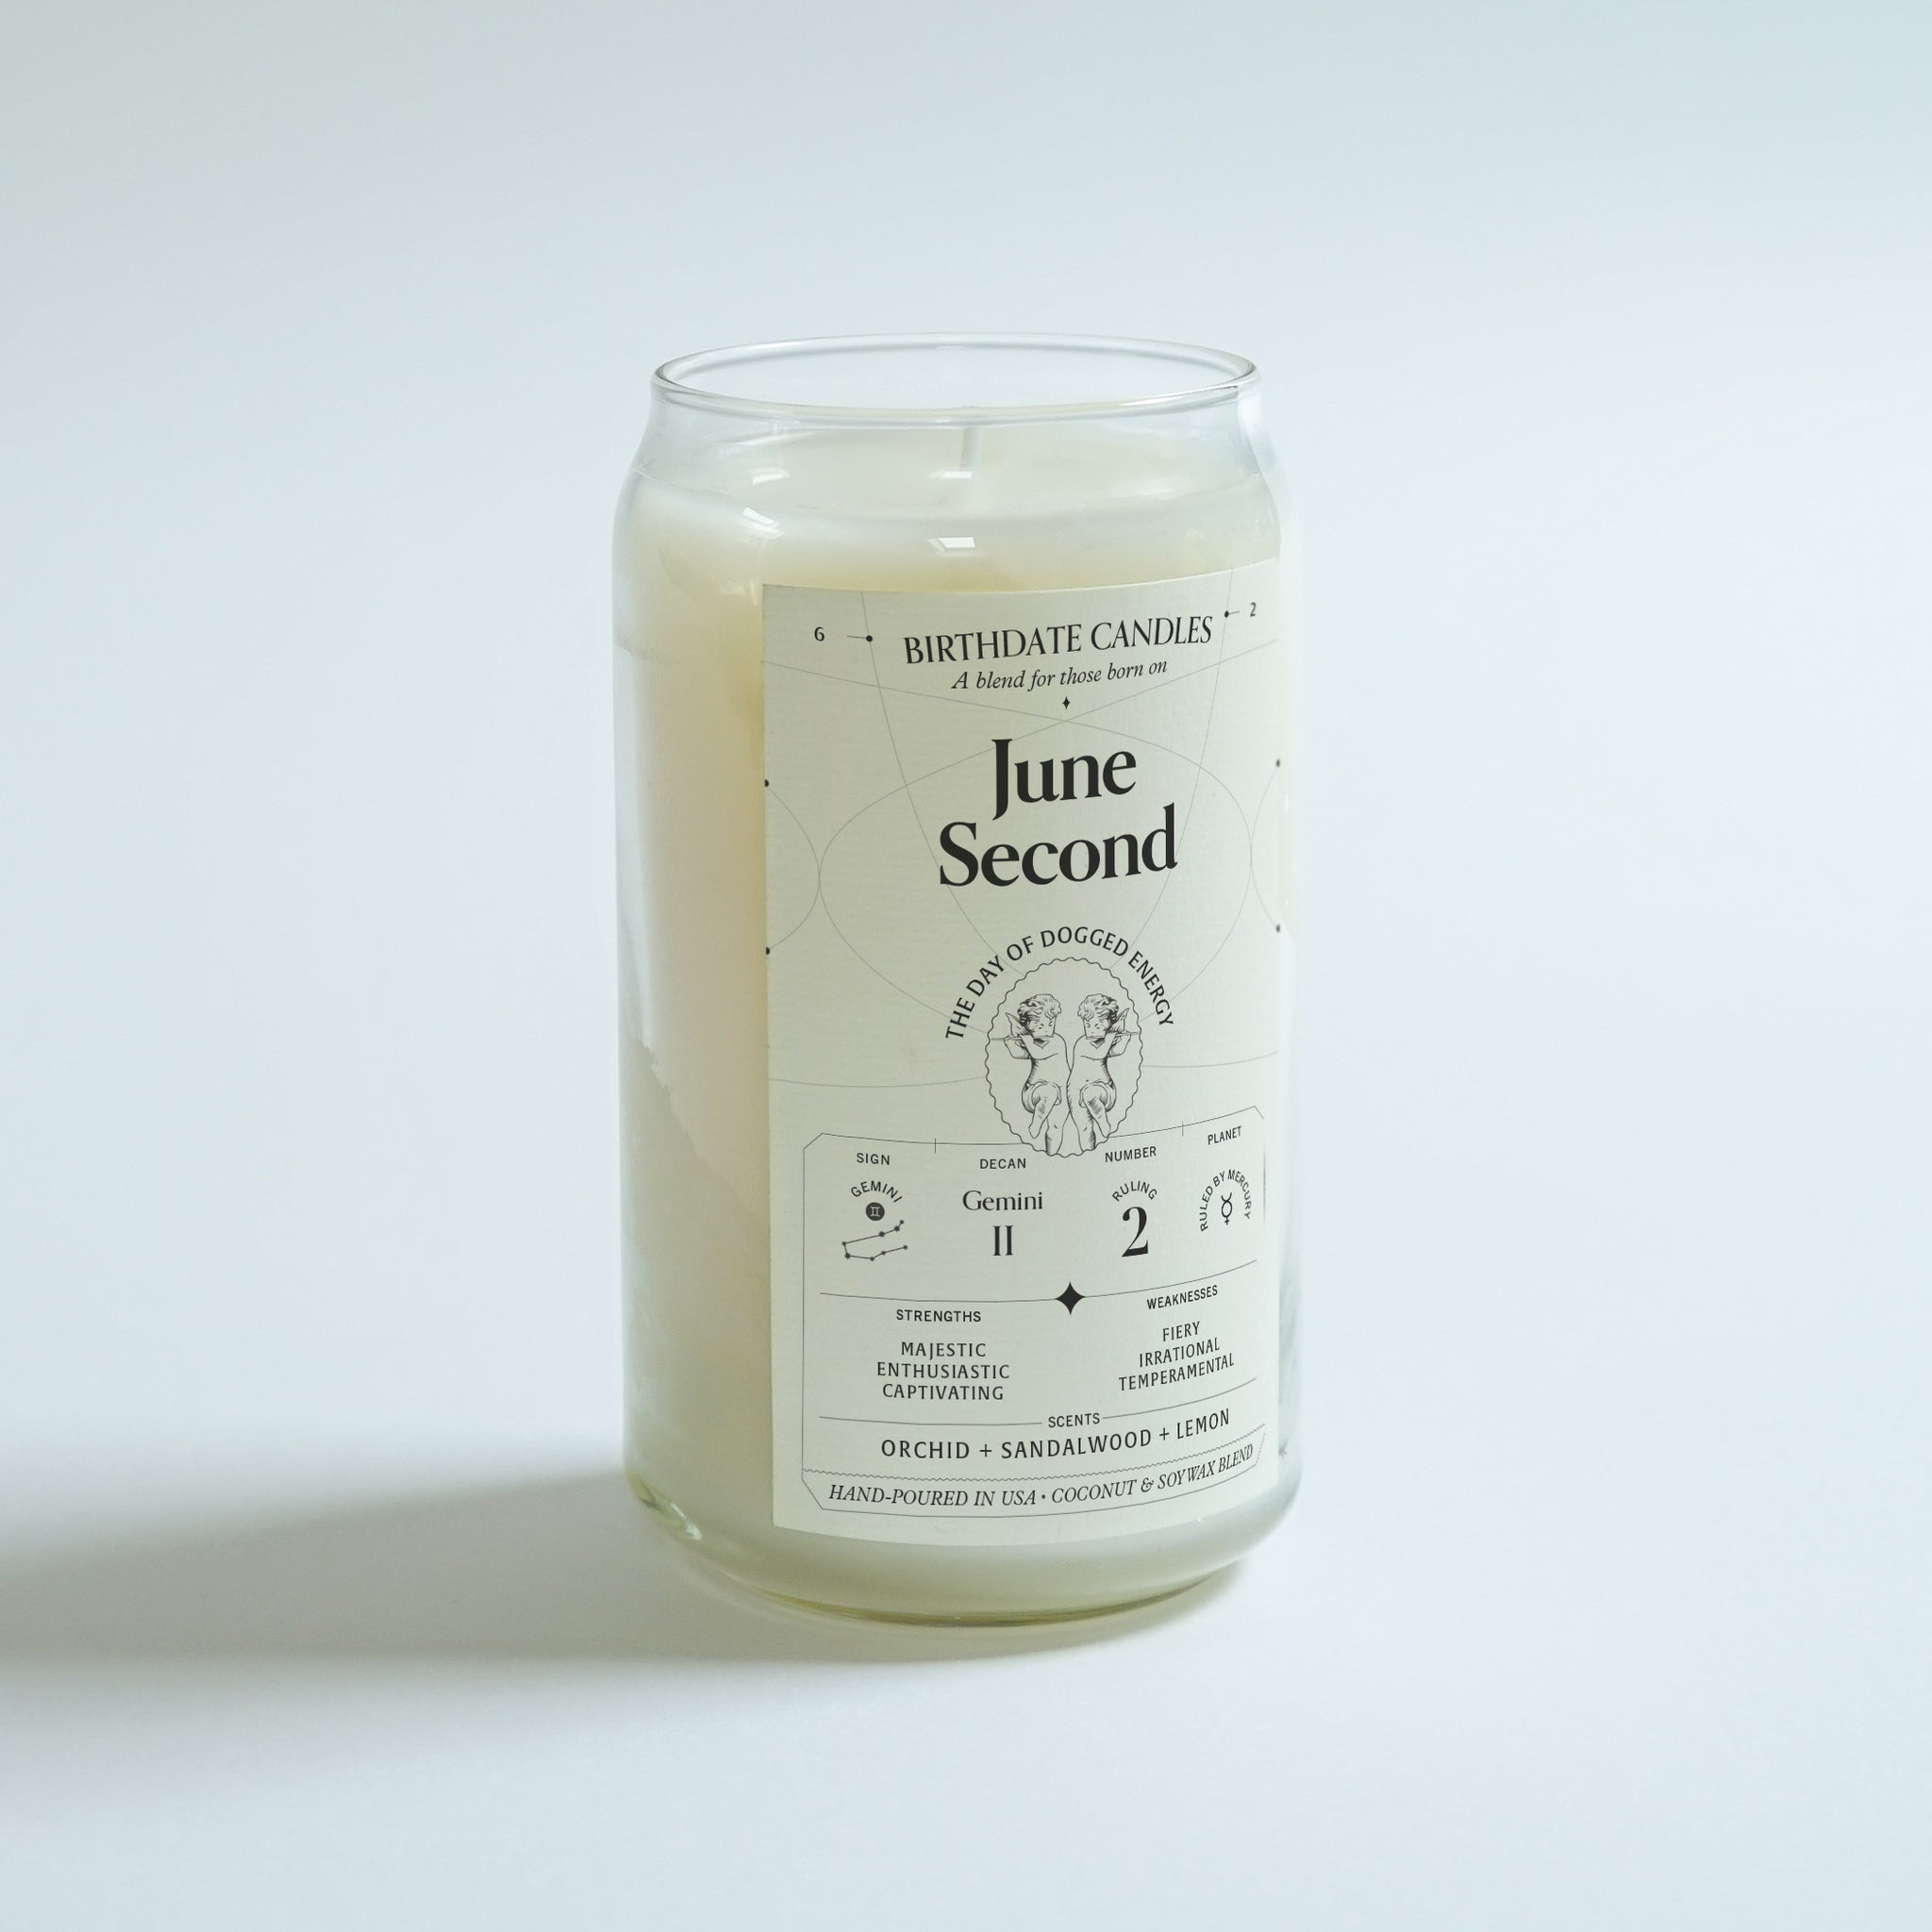 The June Second Candle